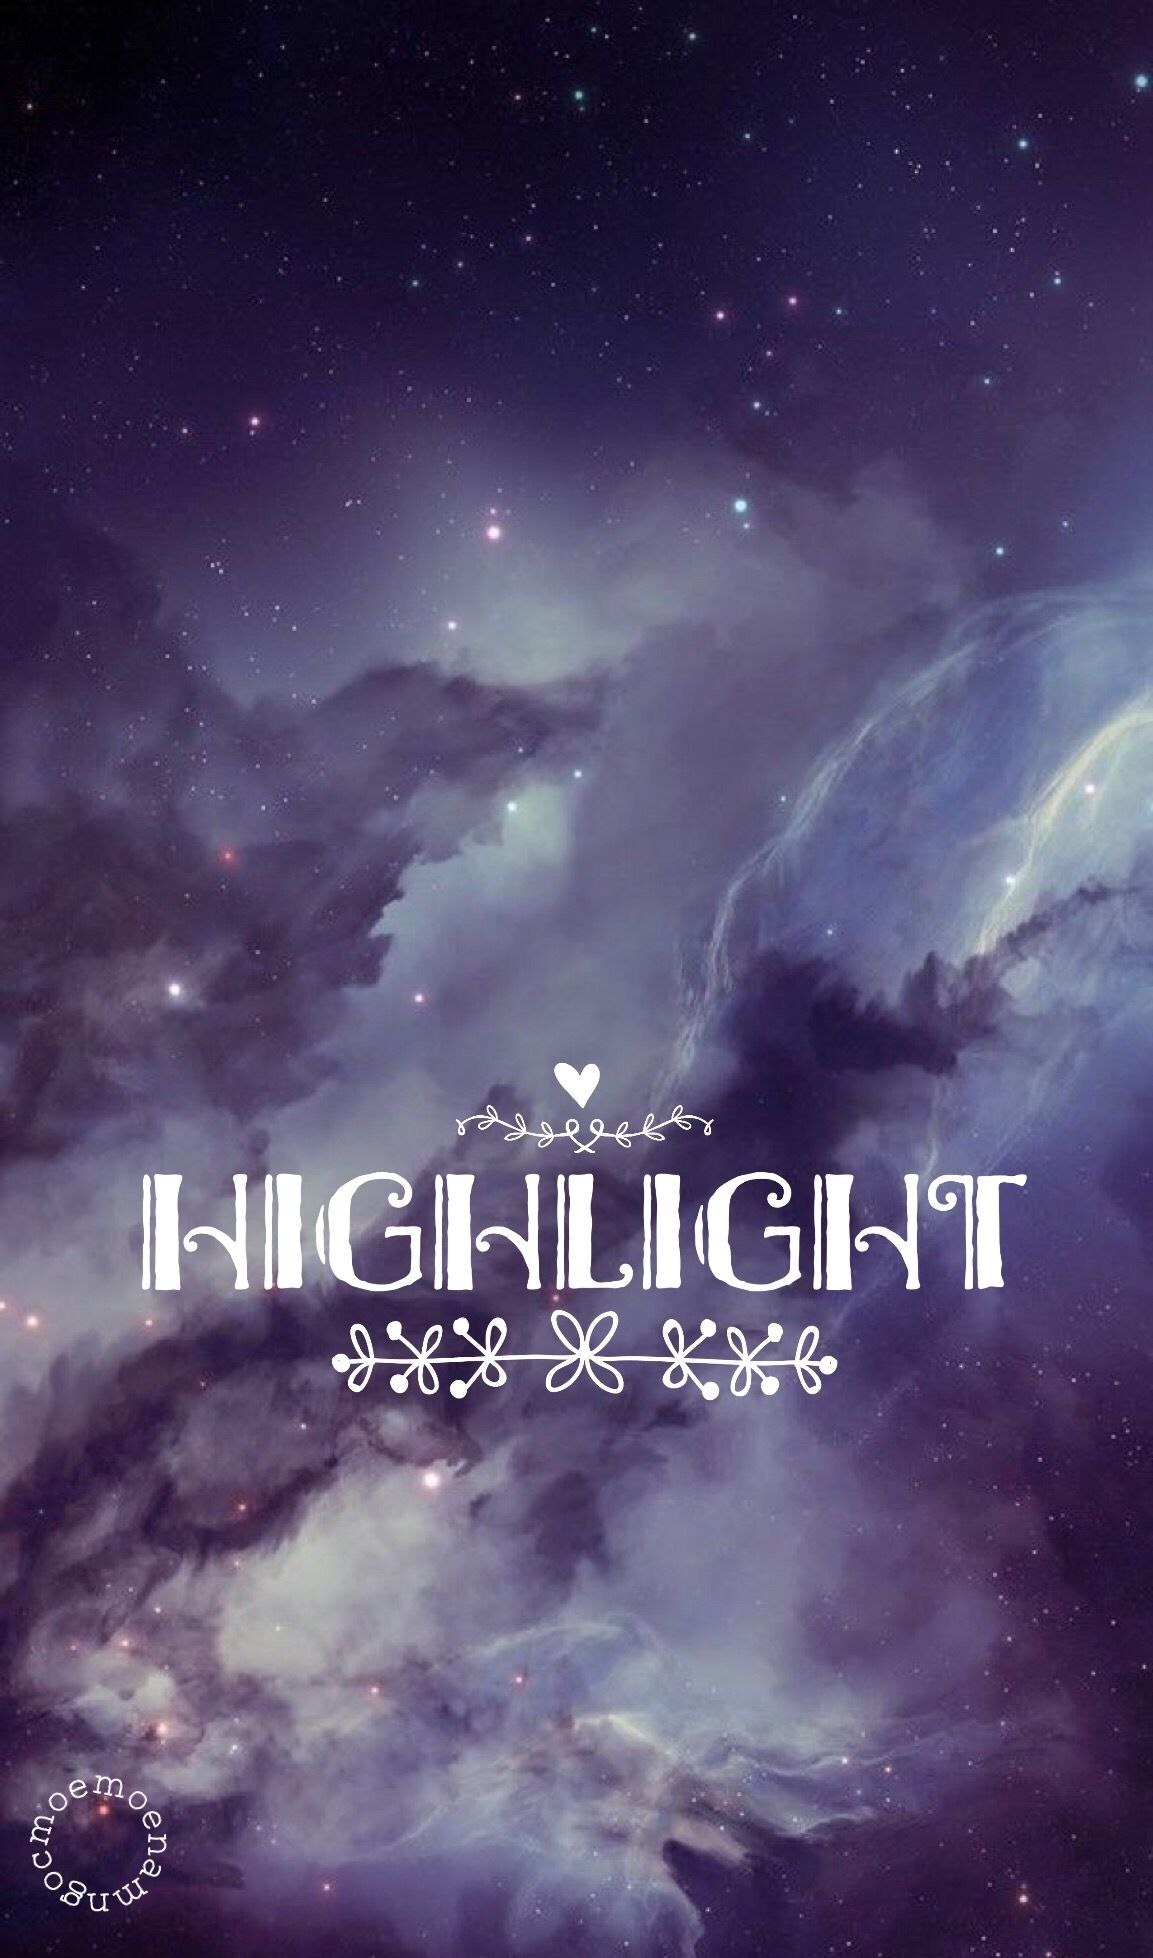 Free Download Hightlight Kpop Iphone Wallpaper Galaxy